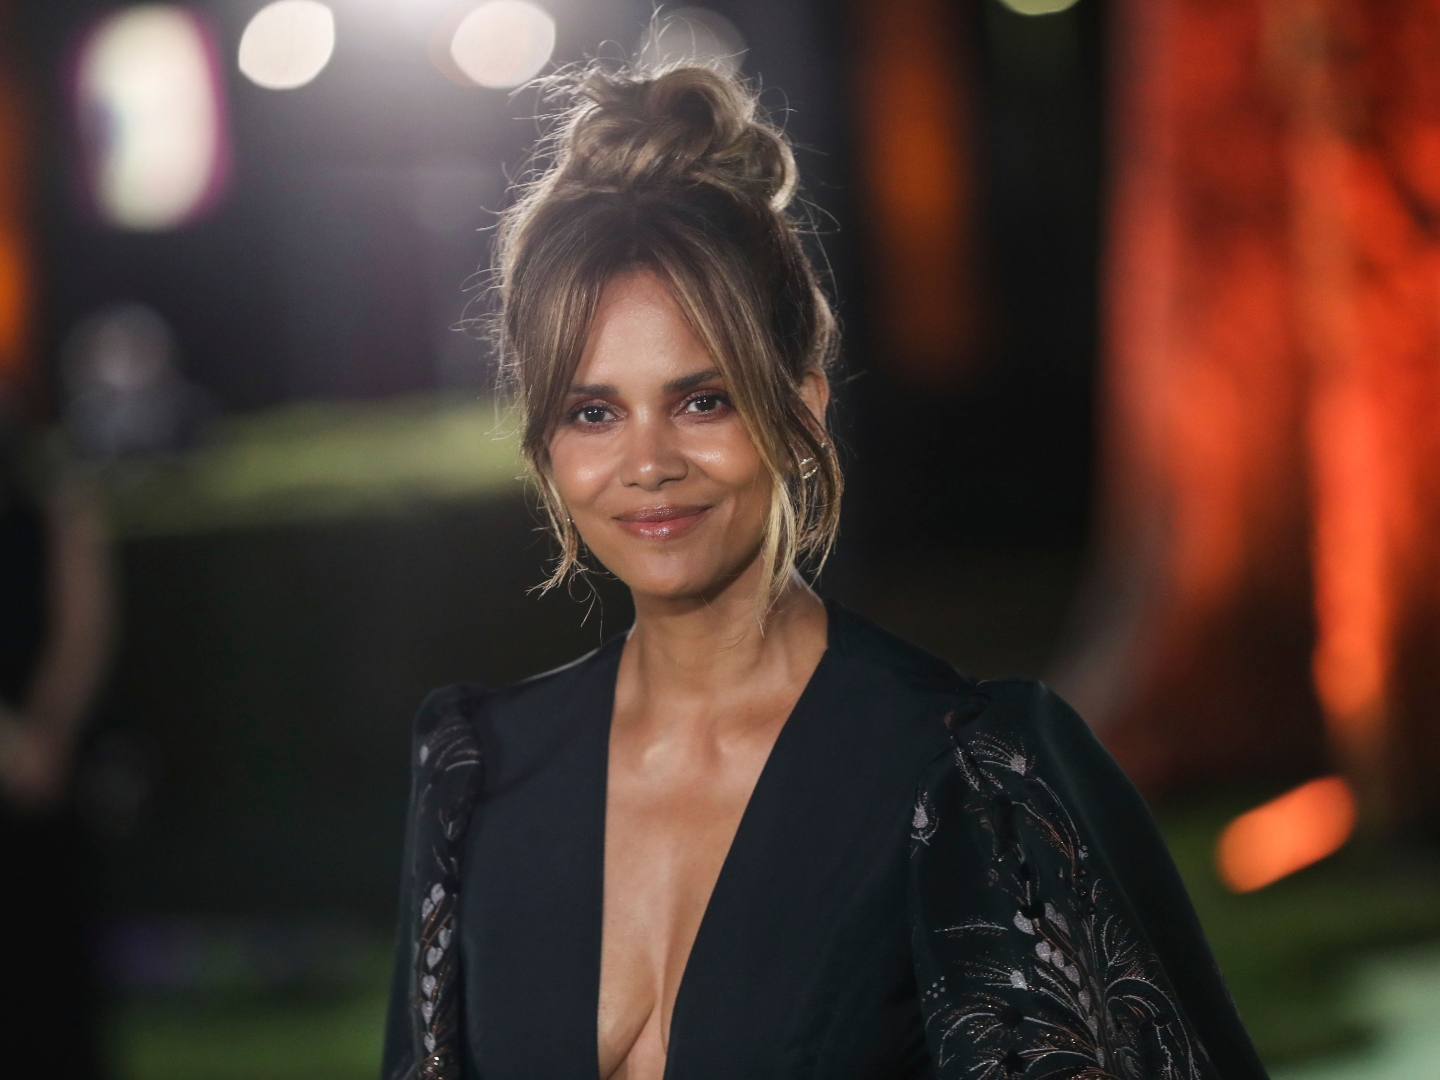 Halle Berry Shares A Rare Photo Of Her Son For His 8th Birthday